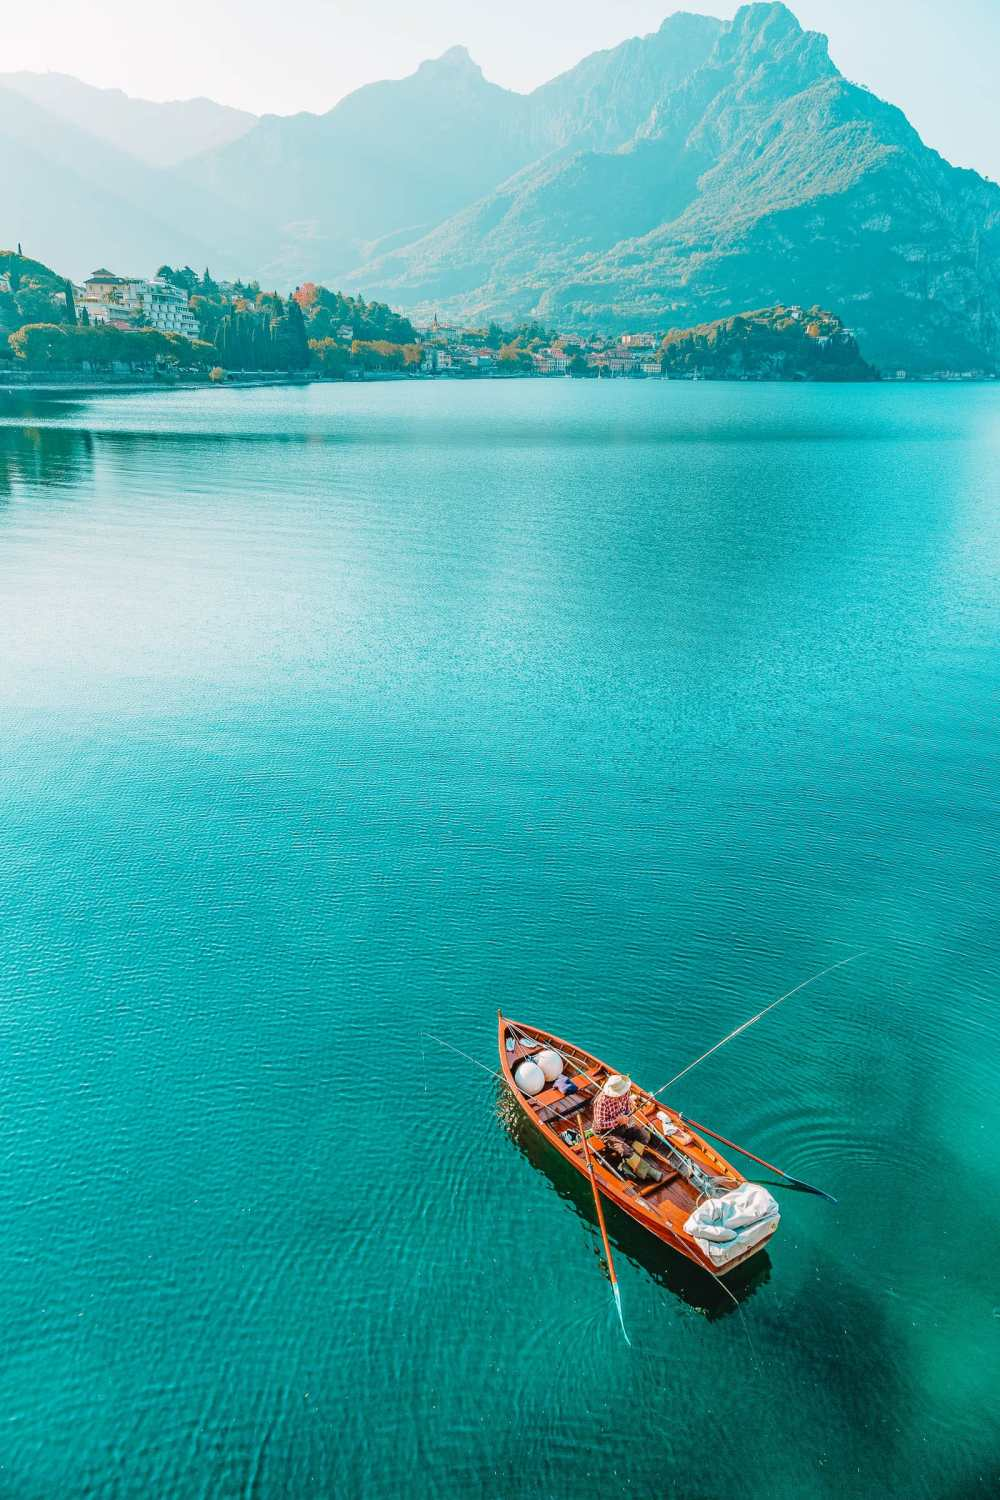 Boating in Lake Como